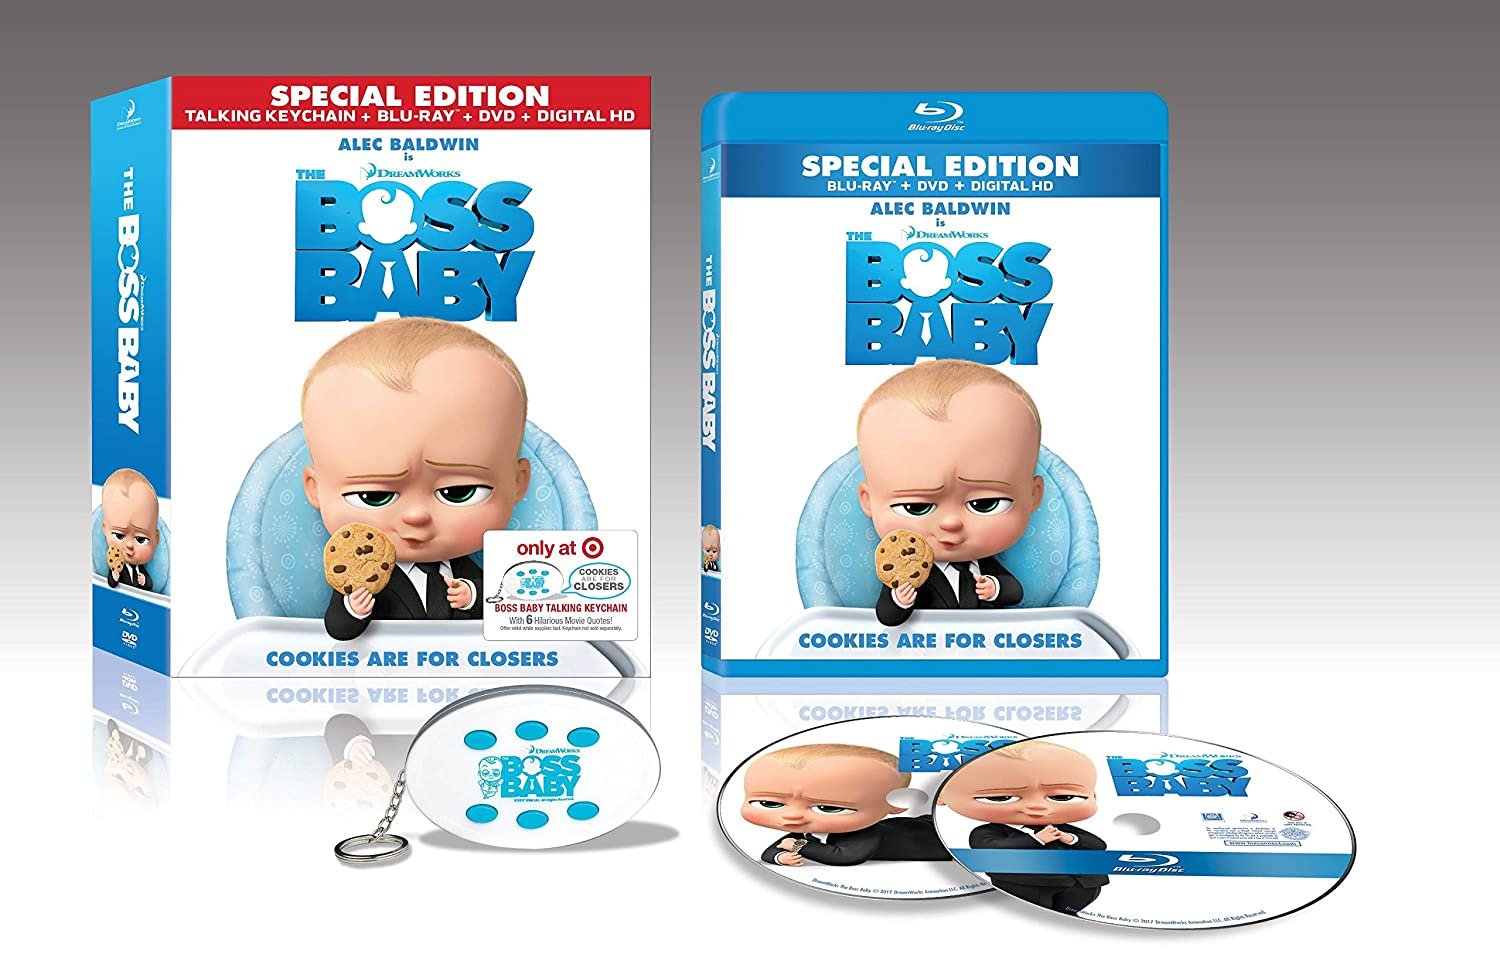 Amazon Com Special Edition The Boss Baby Blu Ray Dvd Digital Hd And Talking Keychain Movies Tv